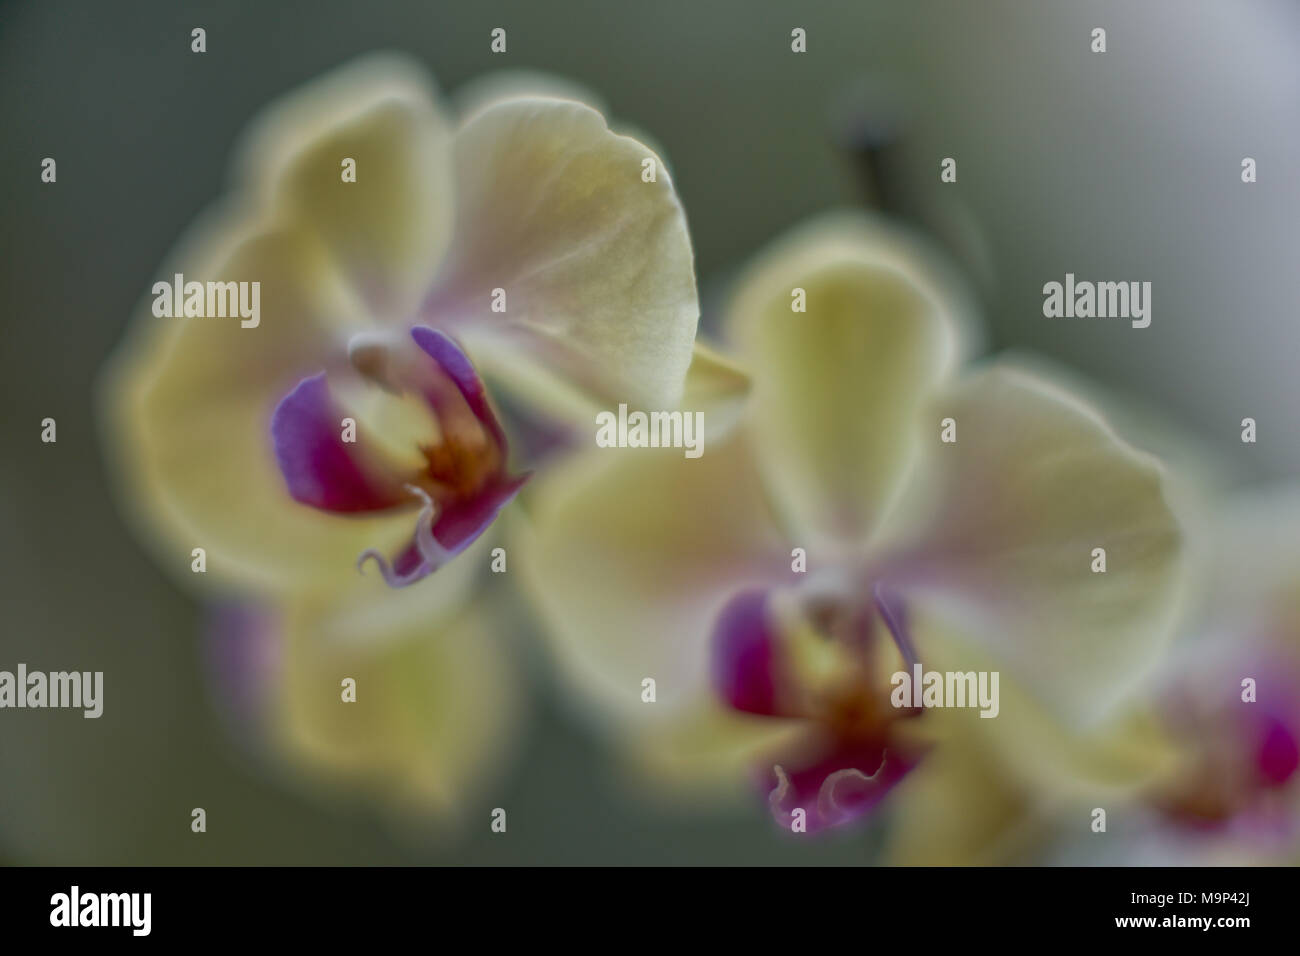 Dreamy Yellow Moth Flowers With Purple Flower Center Close Up Stock